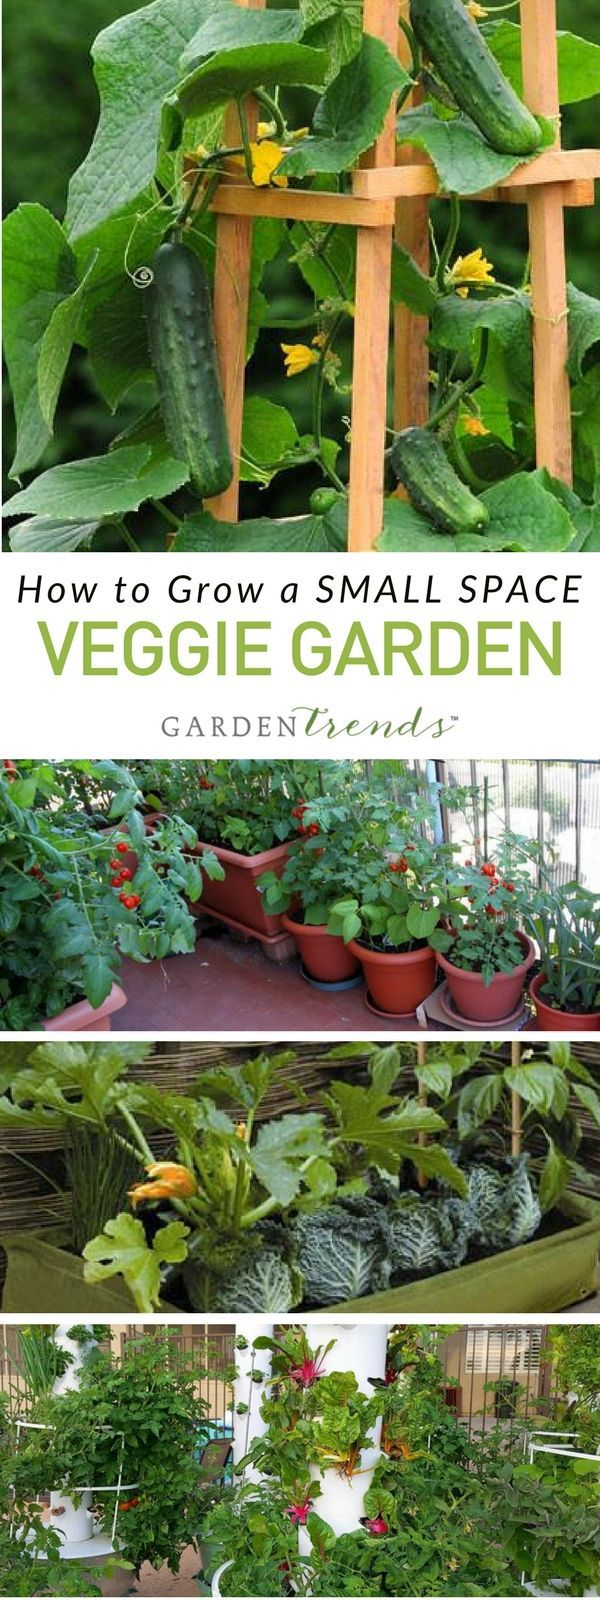 Home food garden - Whether You Live In An Apartment Condo Or Small Patio Home Don T Let Your Small Space Discourage You From Growing An Amazing Vegetable Garden